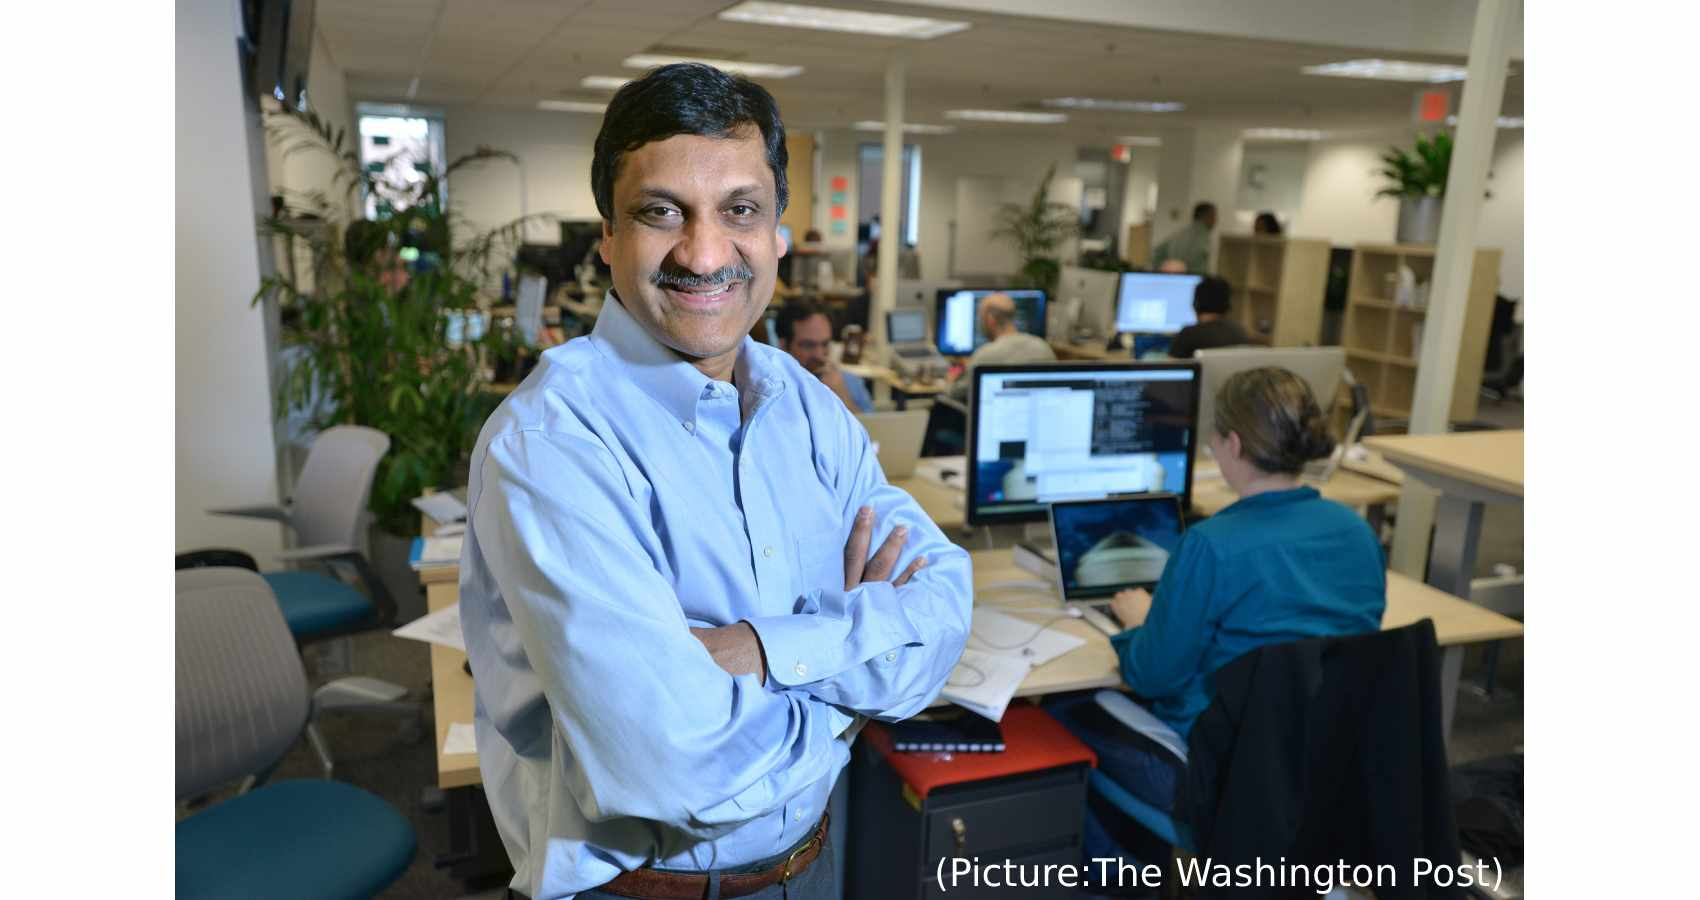 Anant Agarwal Founded & Harvard-MIT Venture Edx, Acquired By 2U For $800 Million In Cash